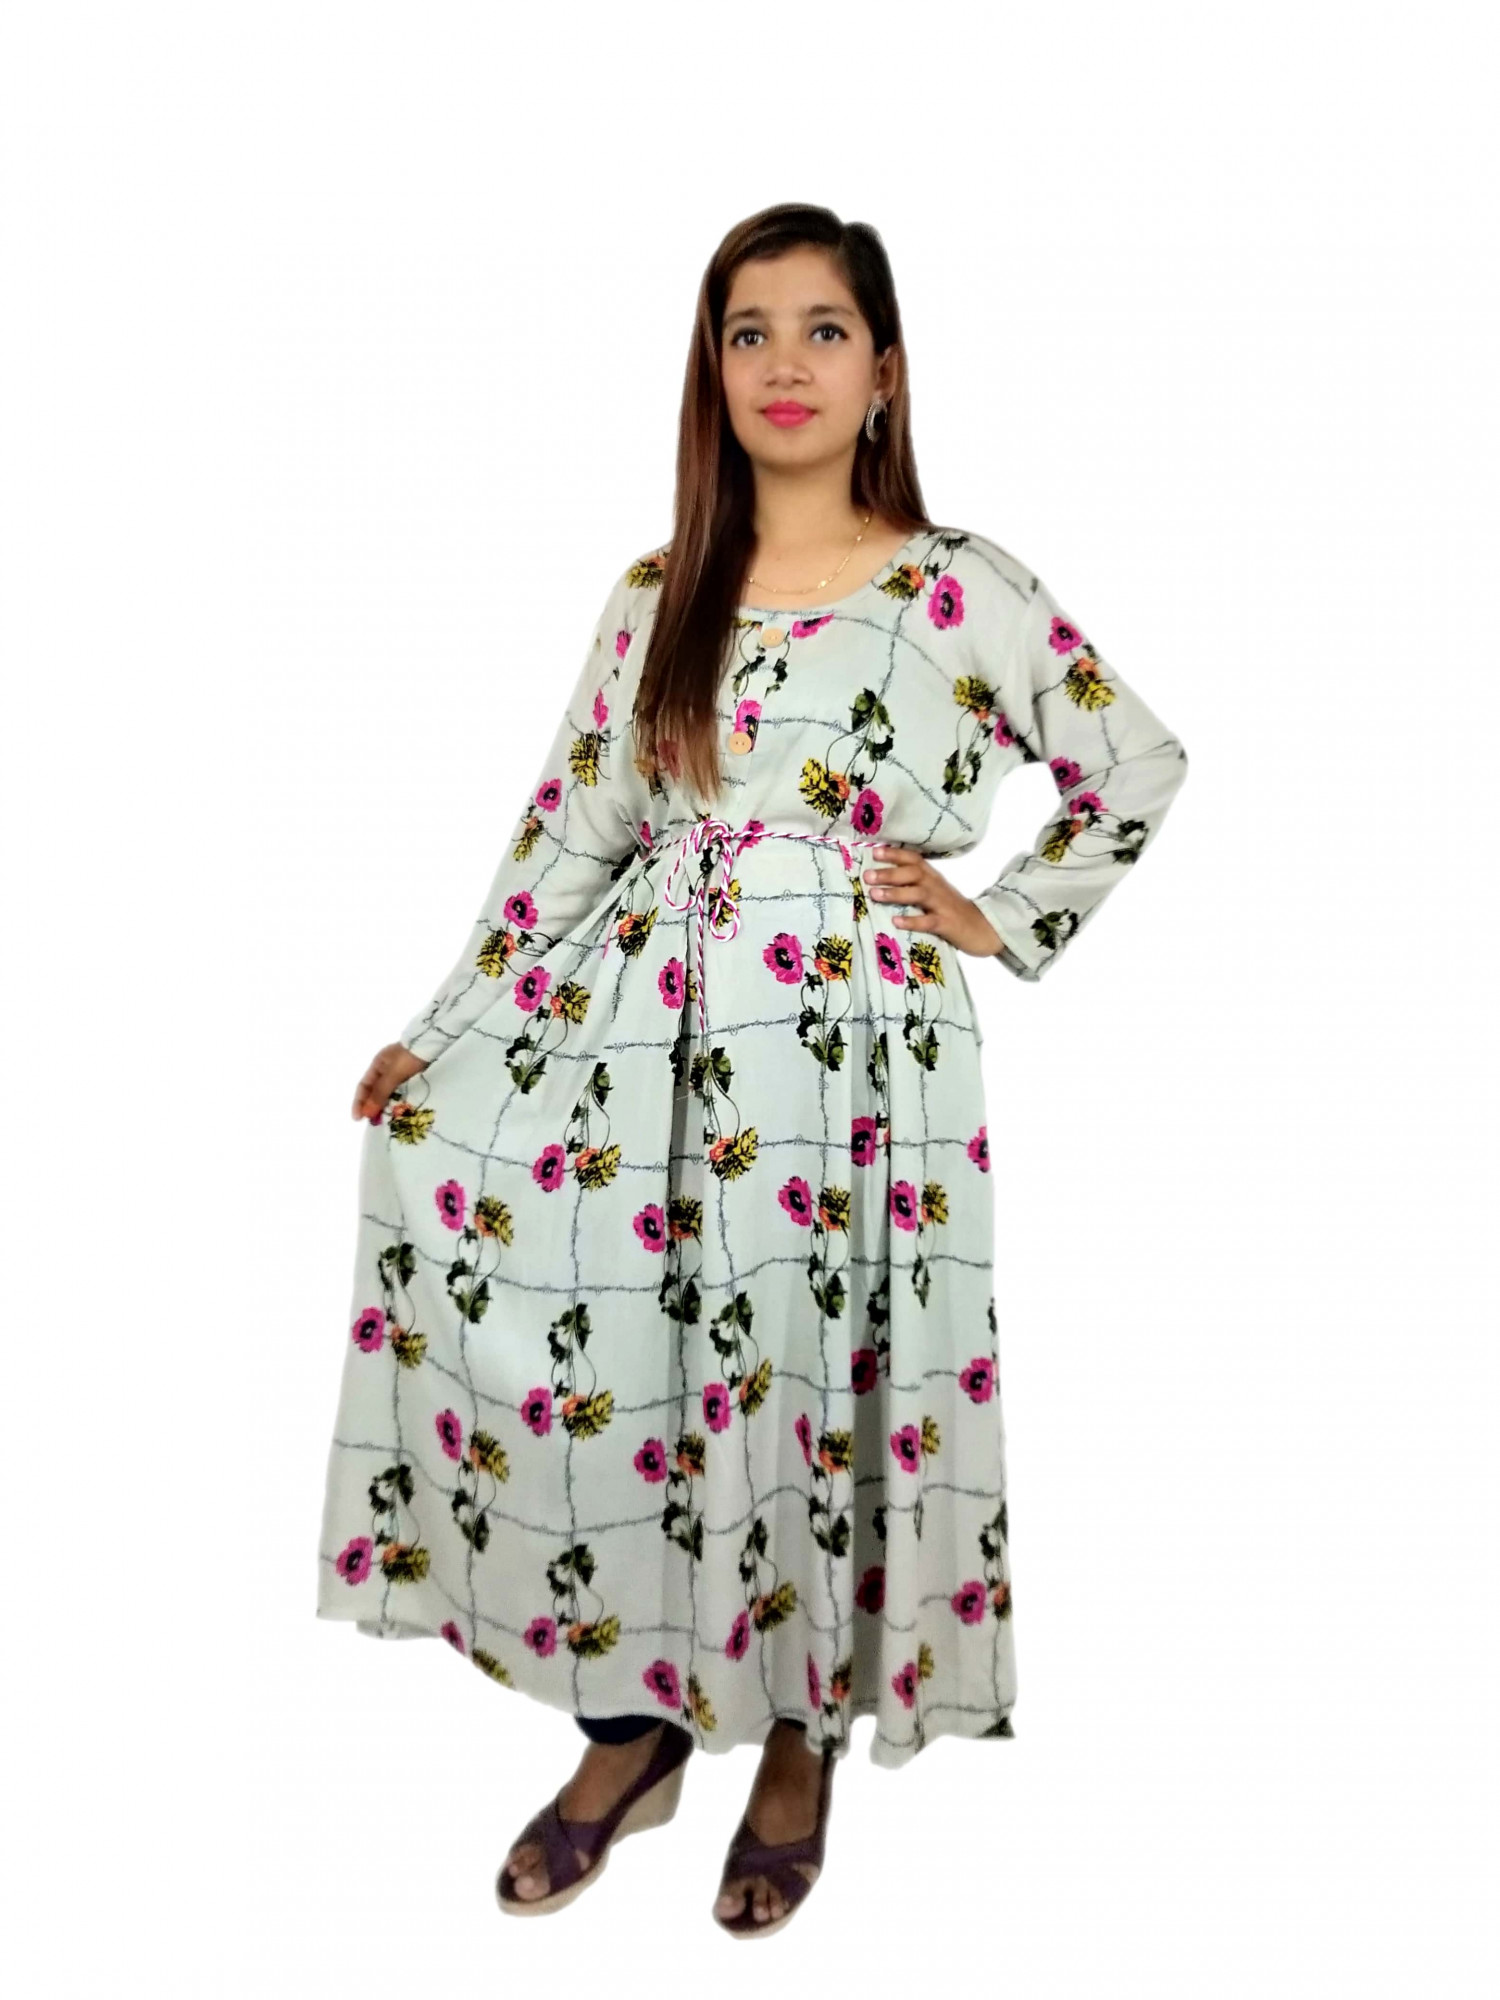 $ Sexy Floral Printed Cotton Kurtis For Woman $ Vihustore Infographic